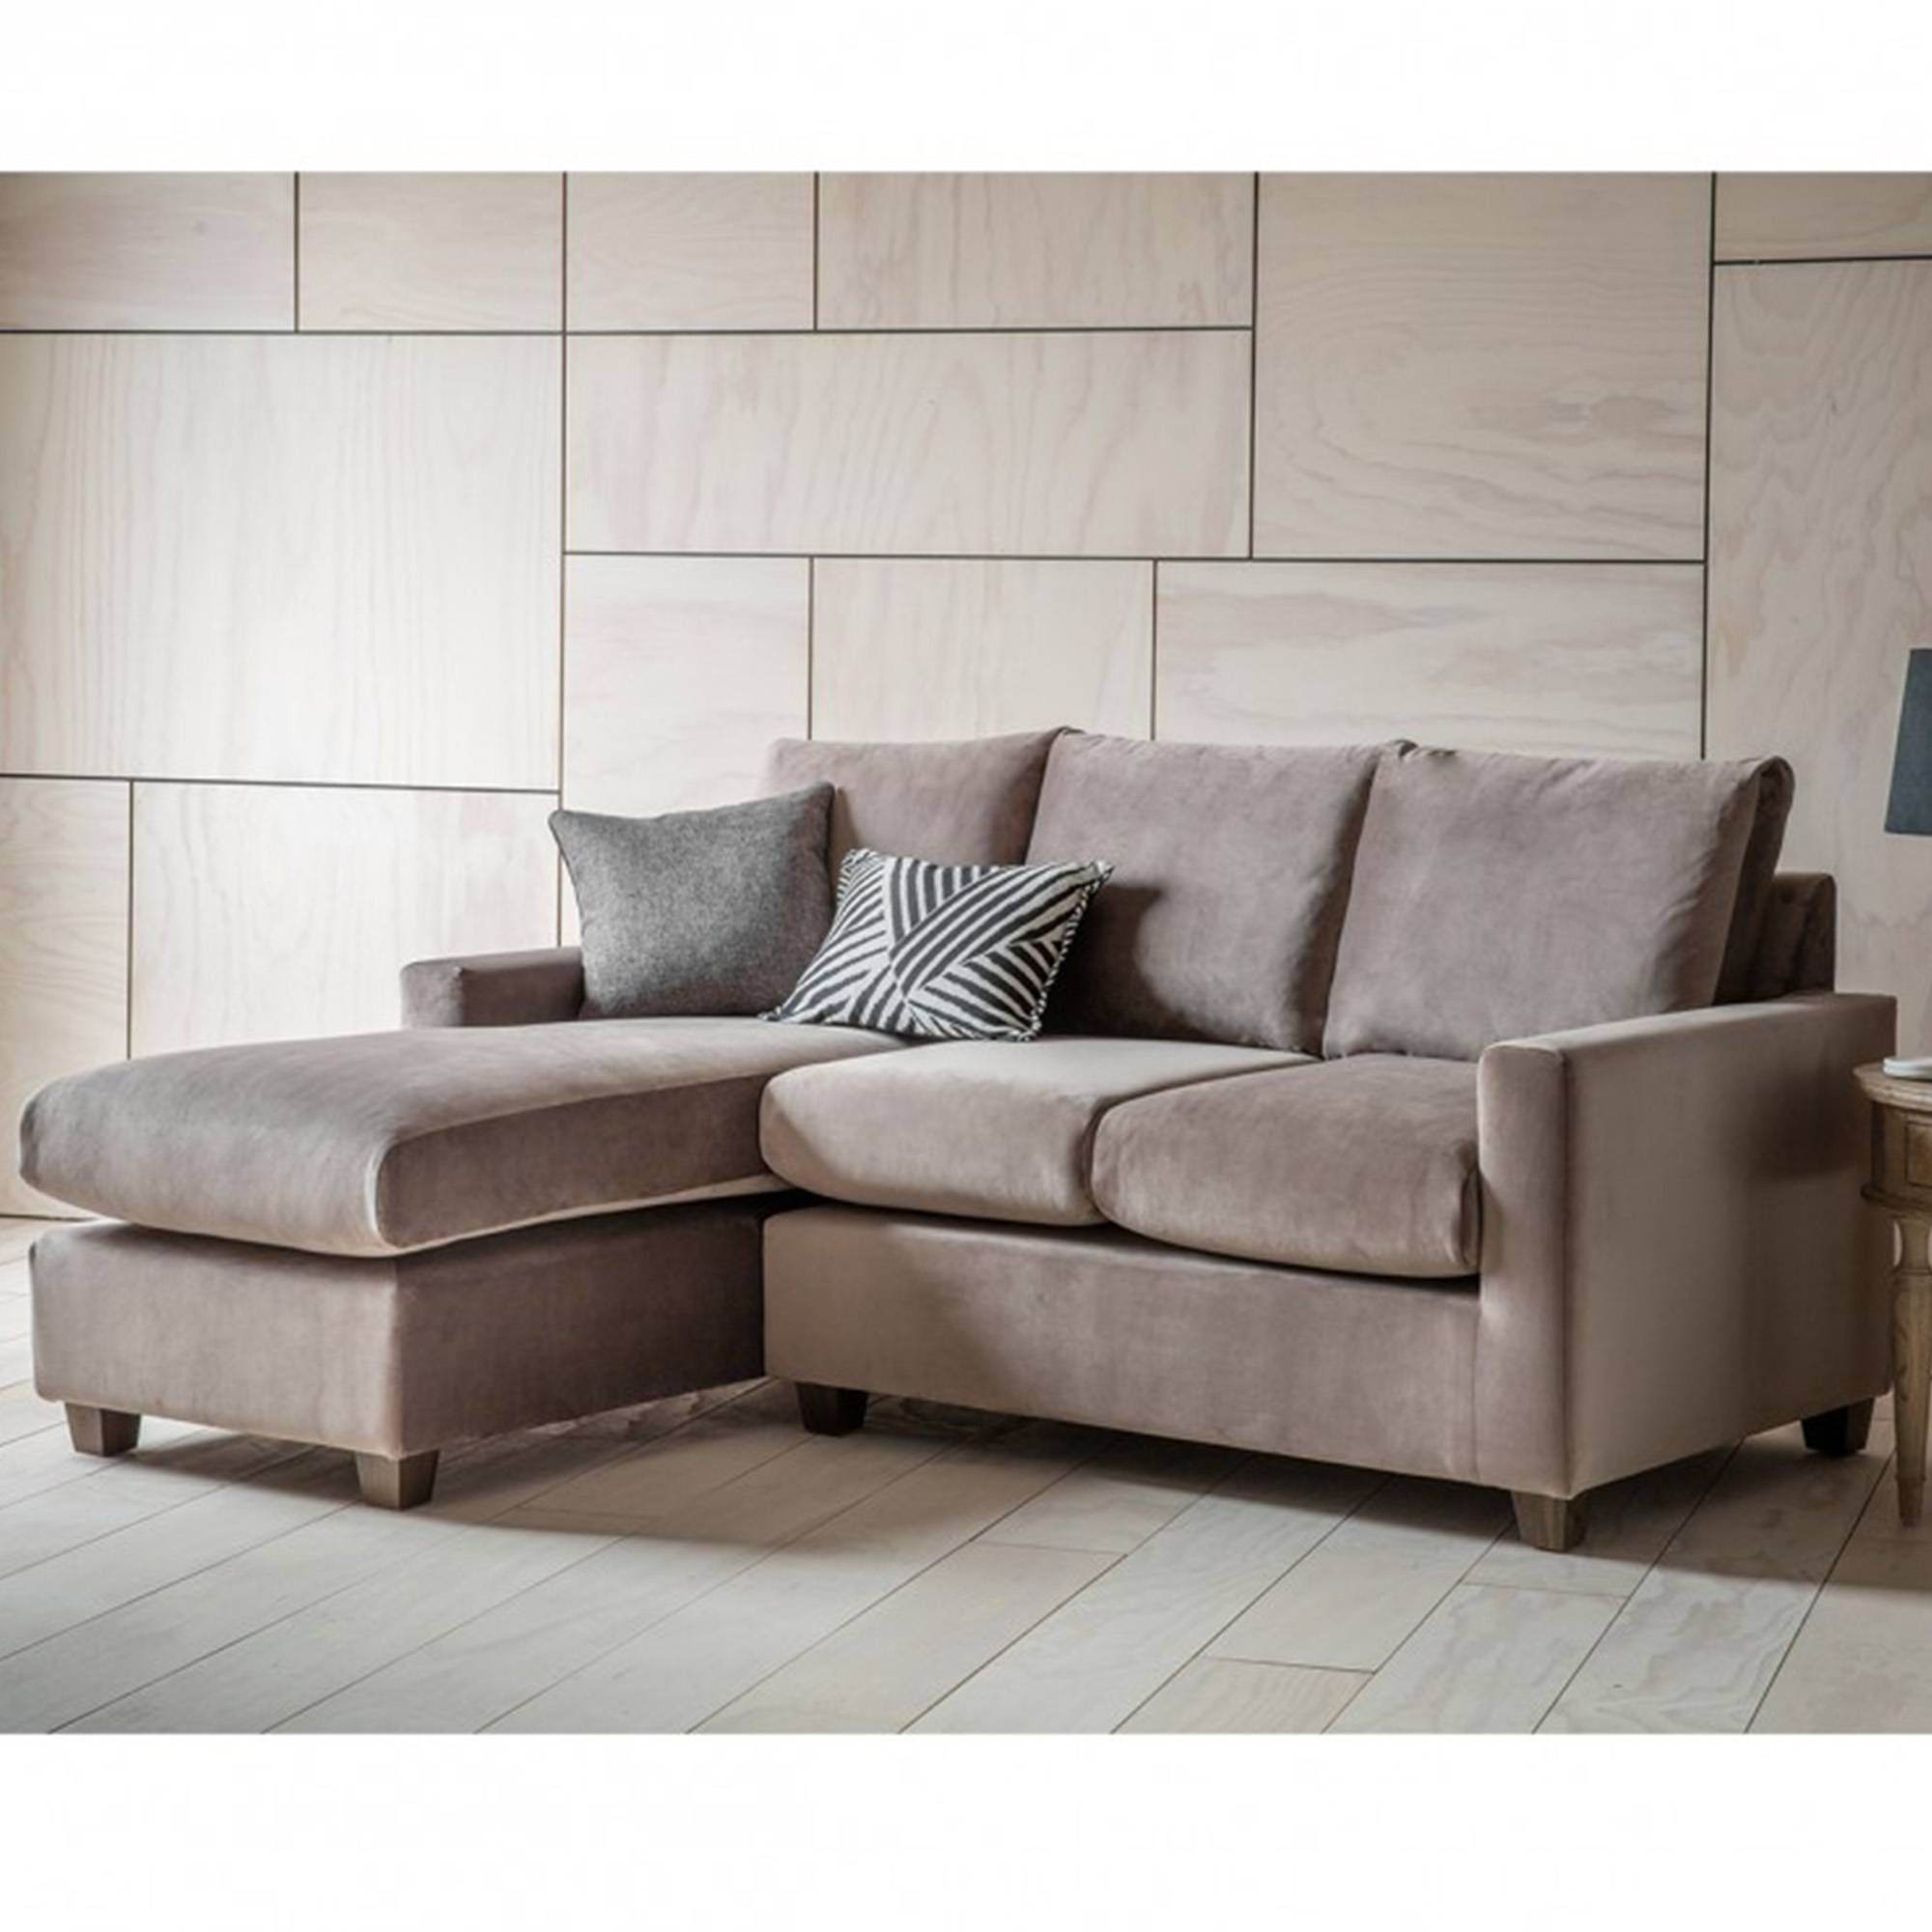 Brussels Taupe Stratford Rh Chaise Sofa | Seating Online From pertaining to Stratford Sofas (Image 4 of 30)